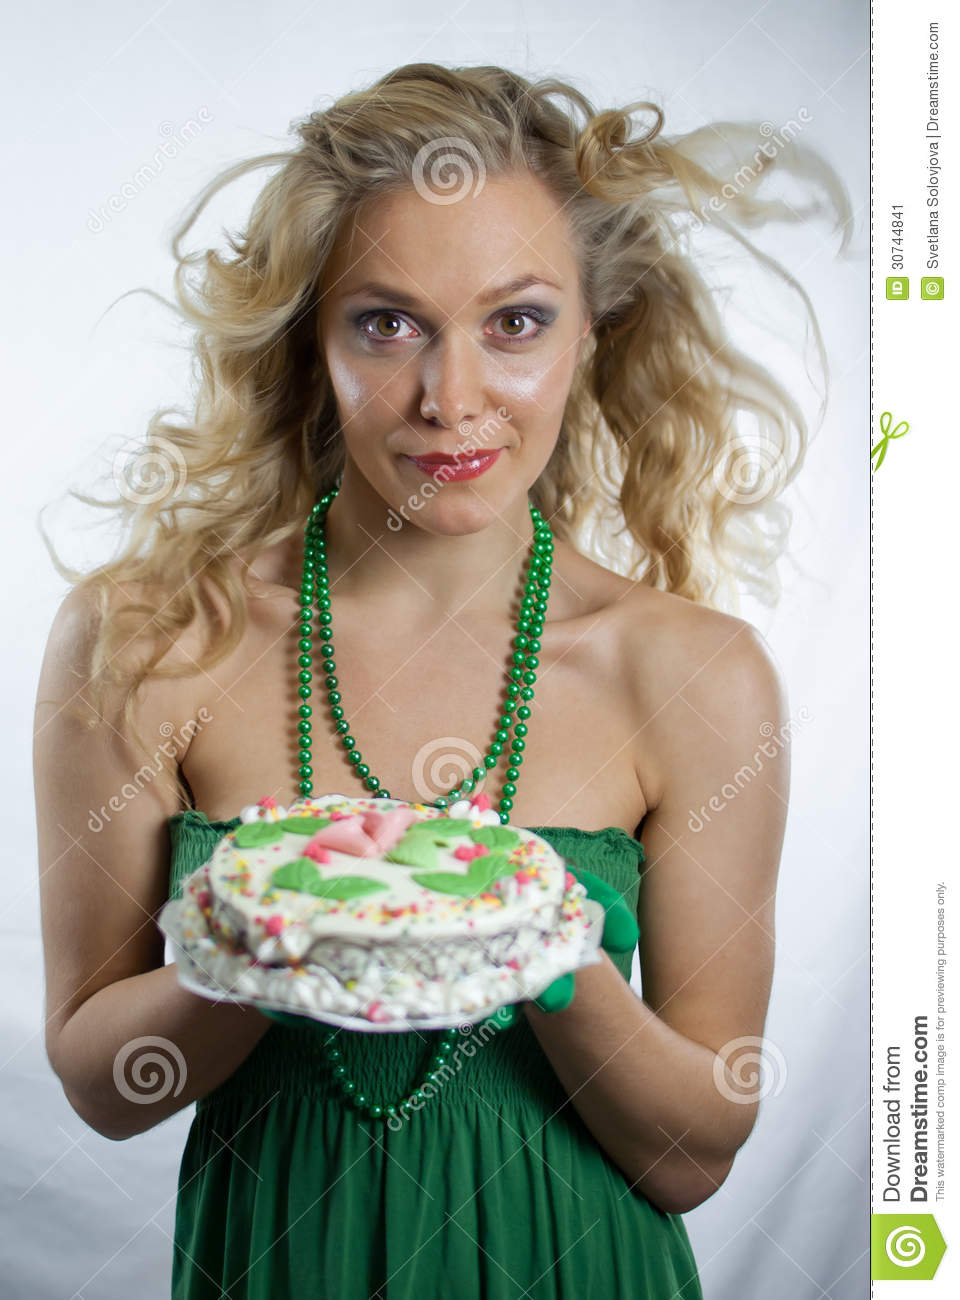 Image Result For Woman Holding A Birthday Cake